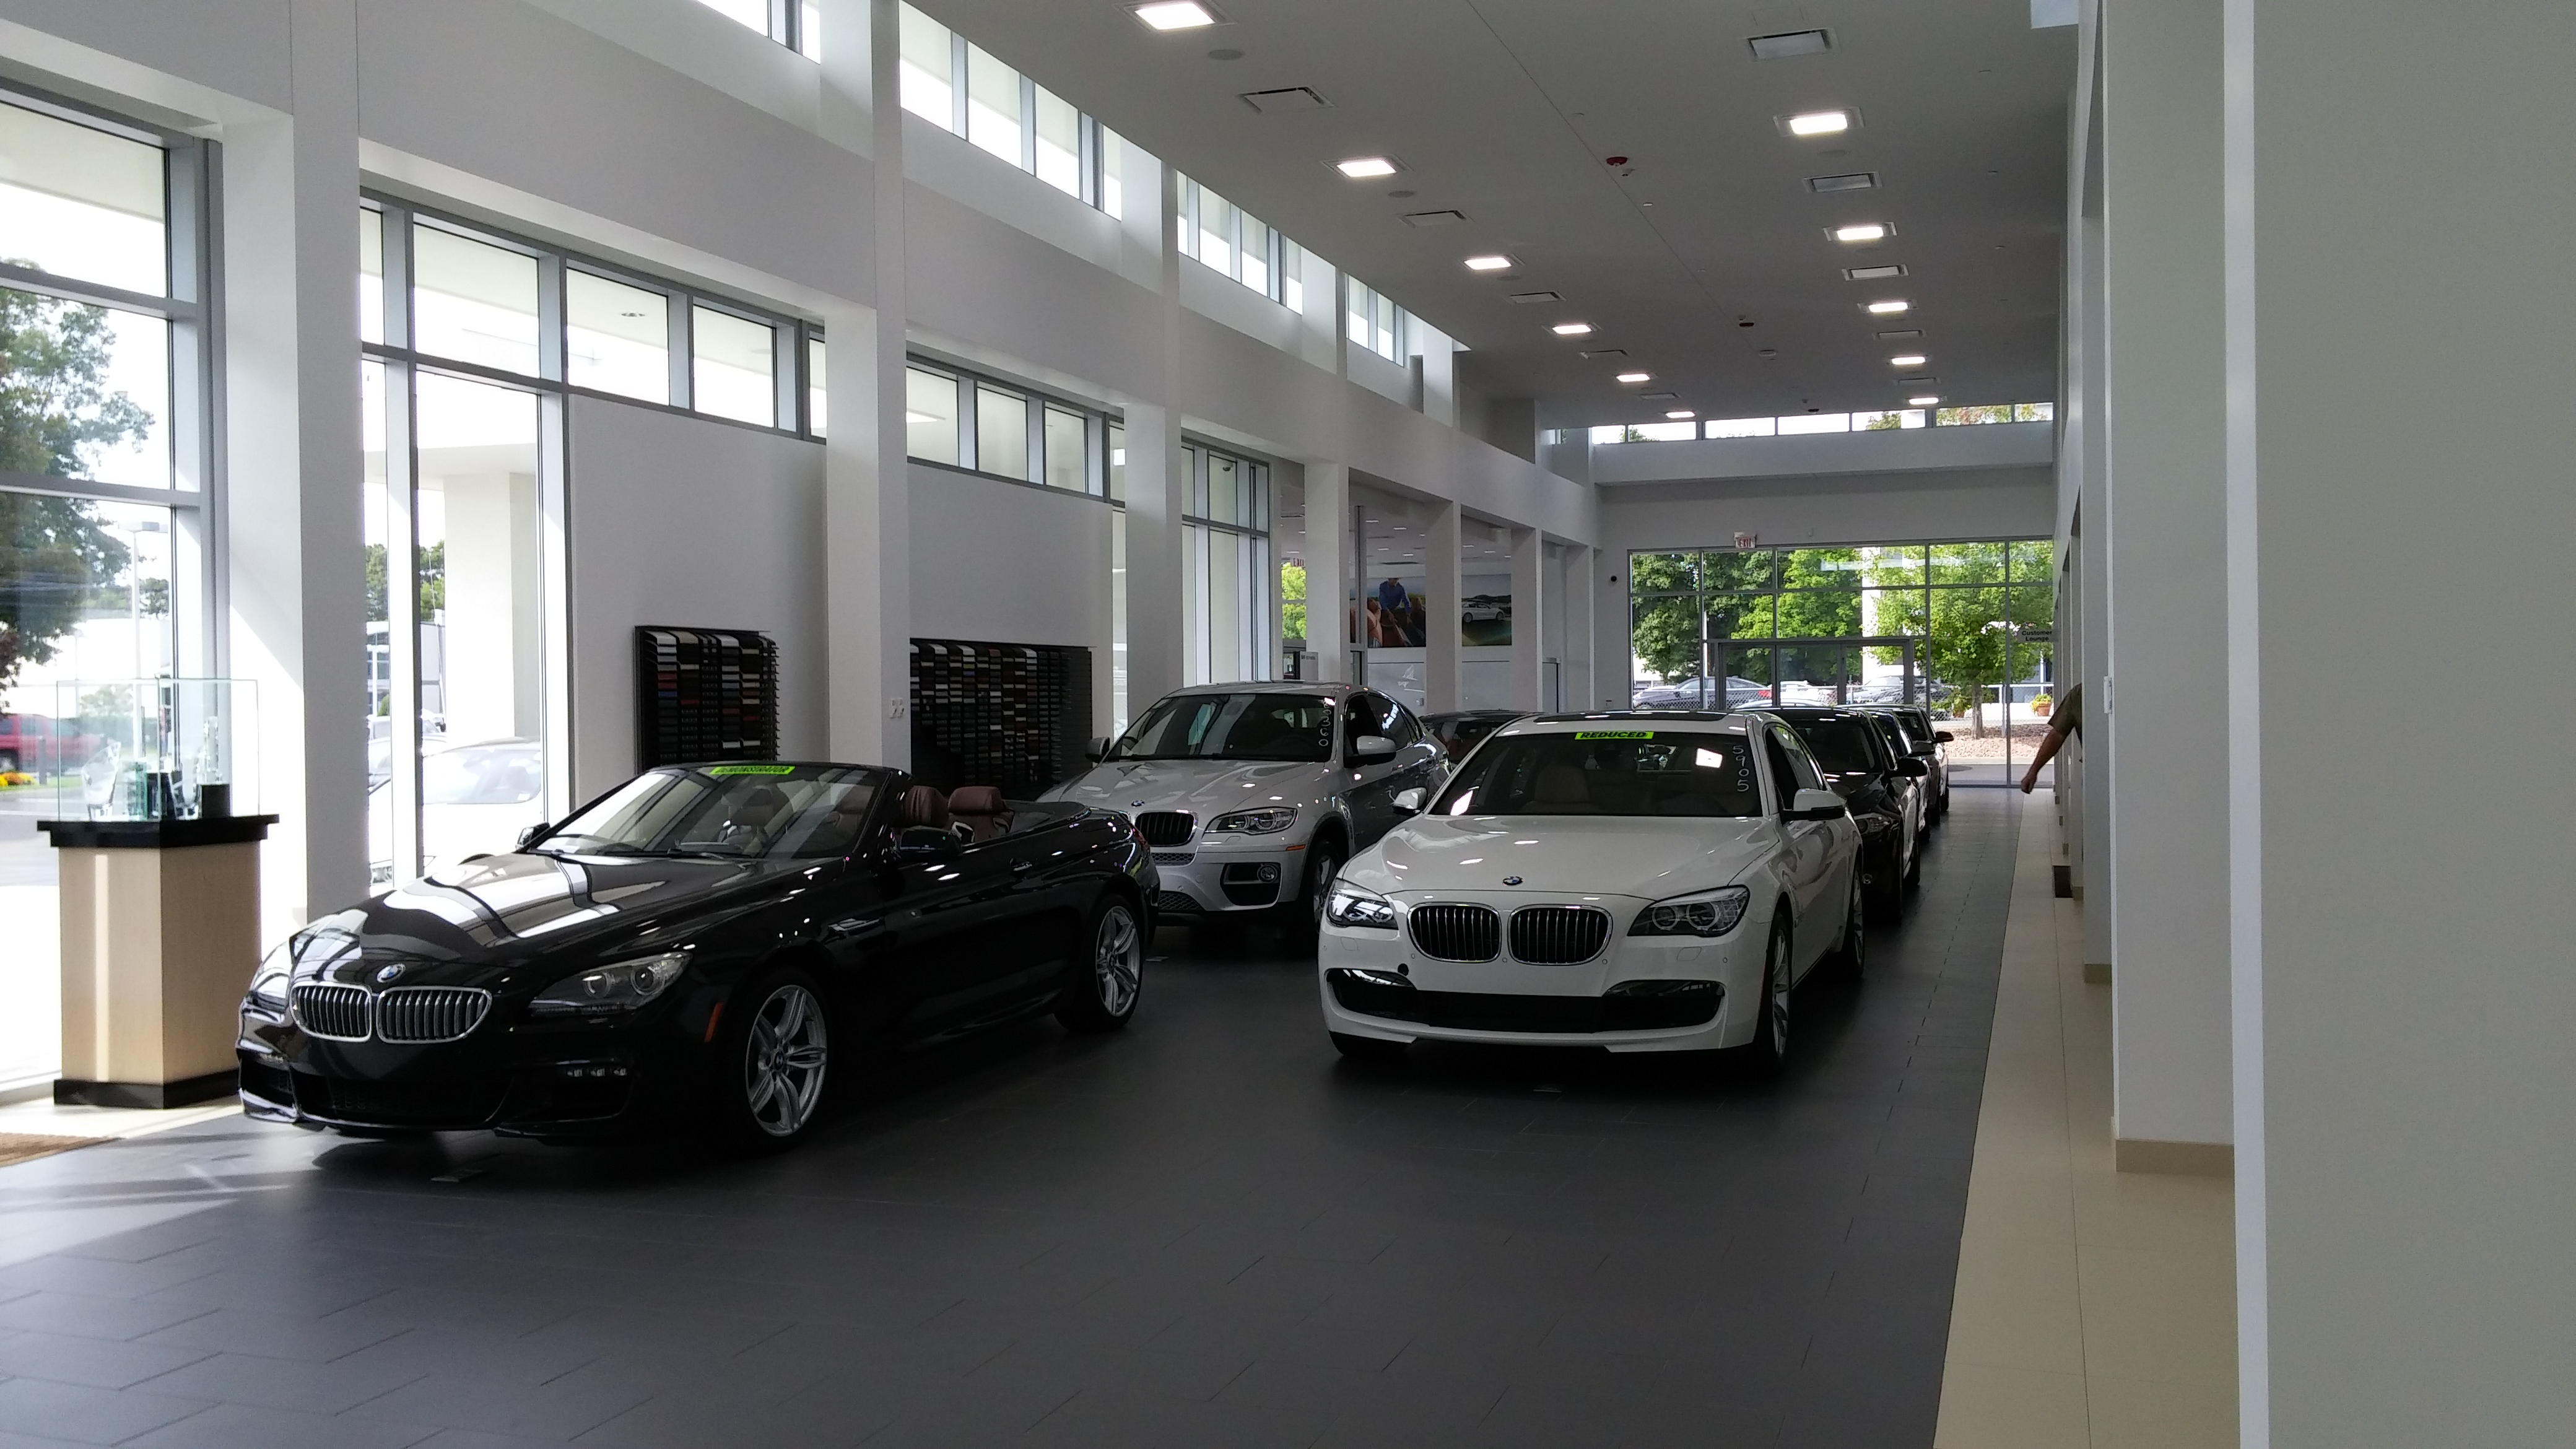 Competition BMW of Smithtown at 599 Middle Country Road, Saint James, NY on Fave